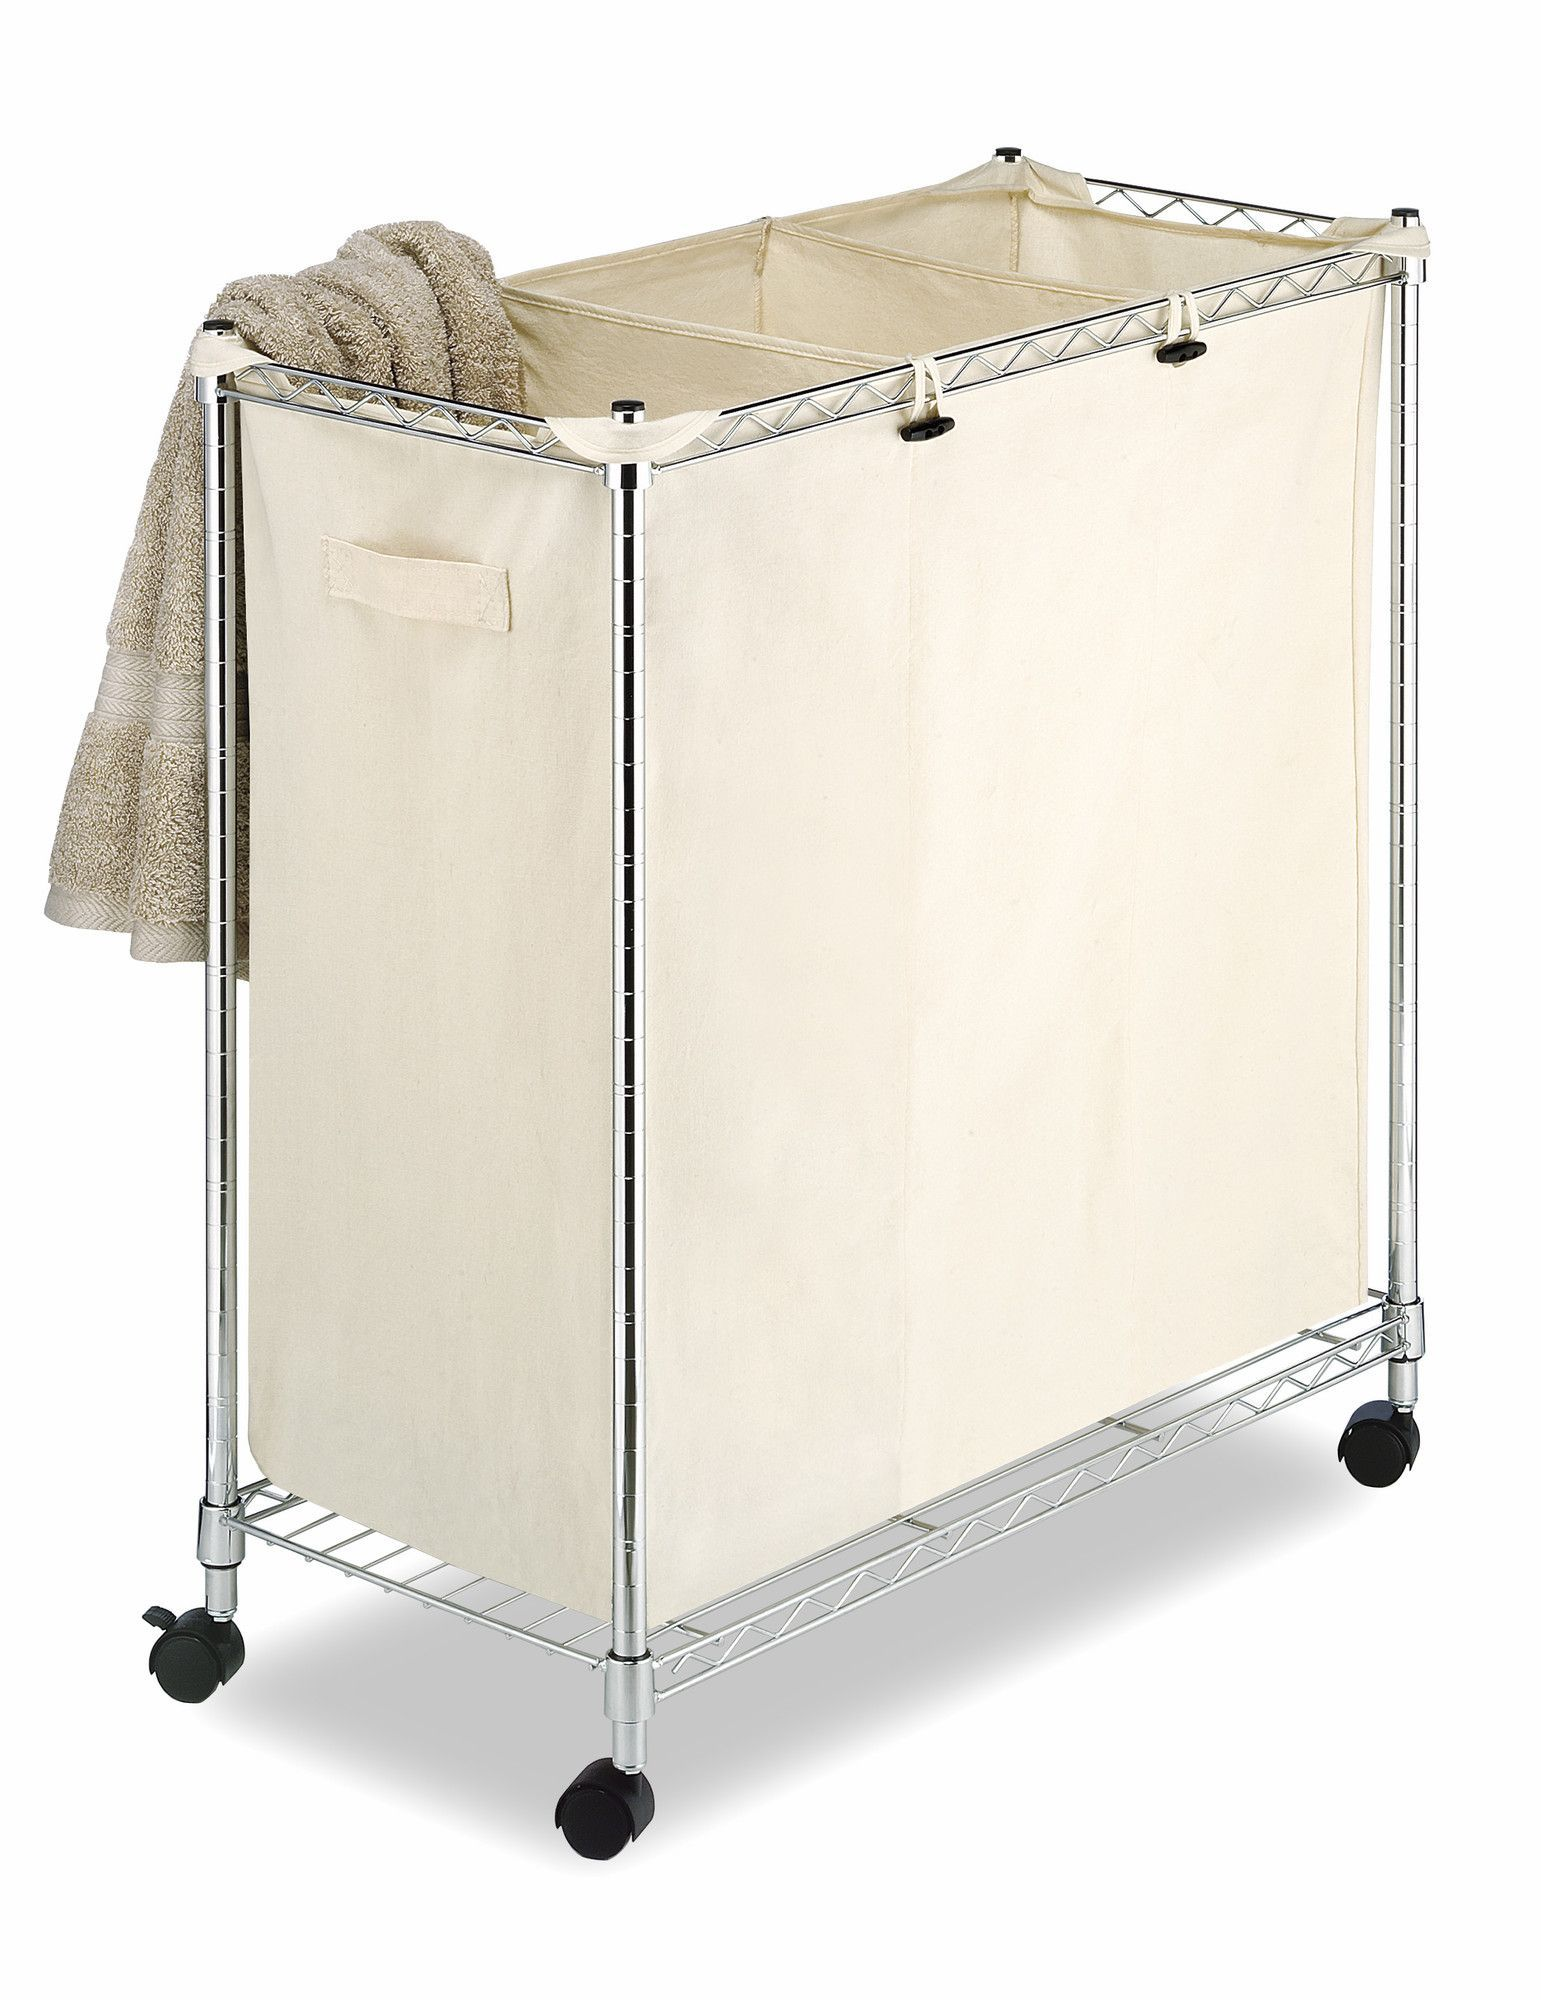 Laundry Sorter | Steel frame, Laundry sorter and Laundry